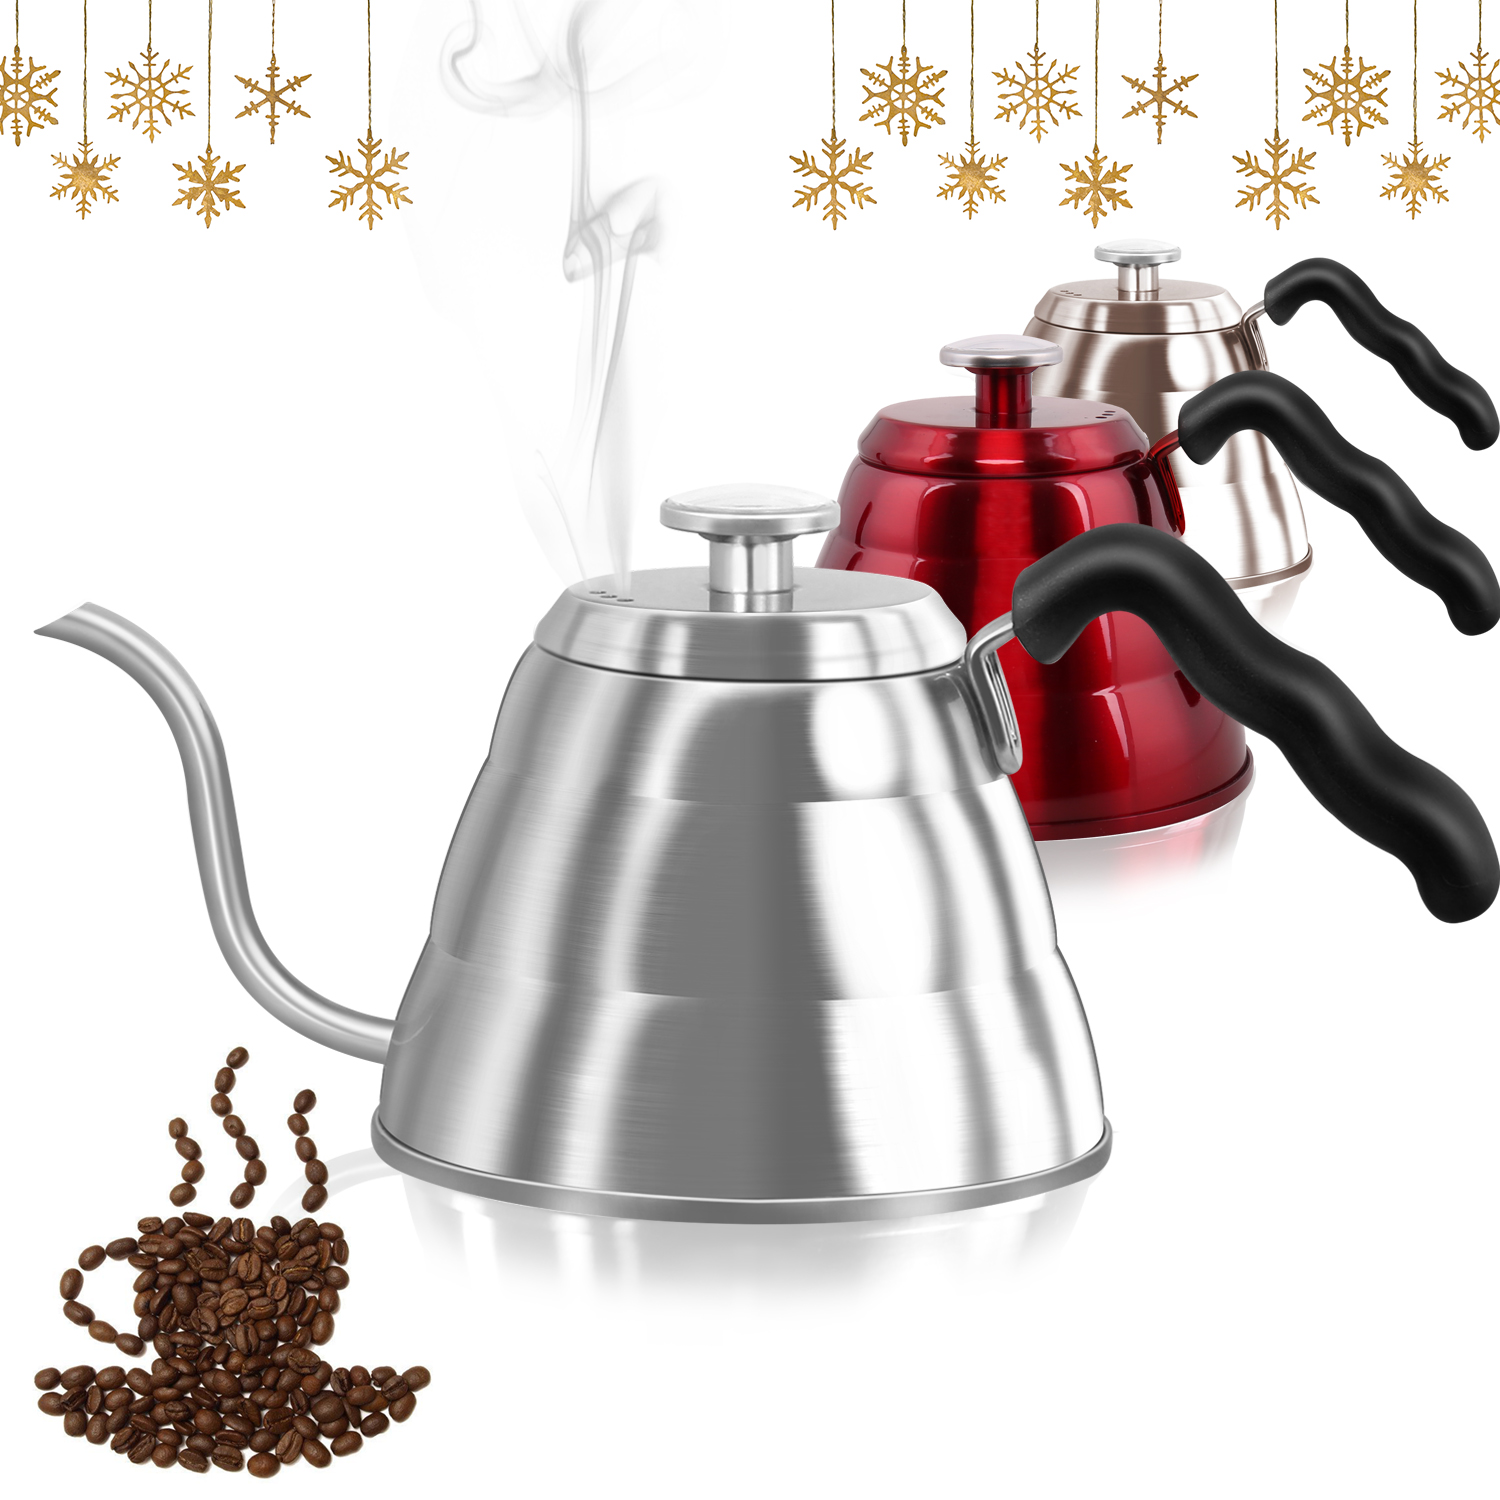 Dealz Frenzy Gooseneck Kettle (34floz, silver)